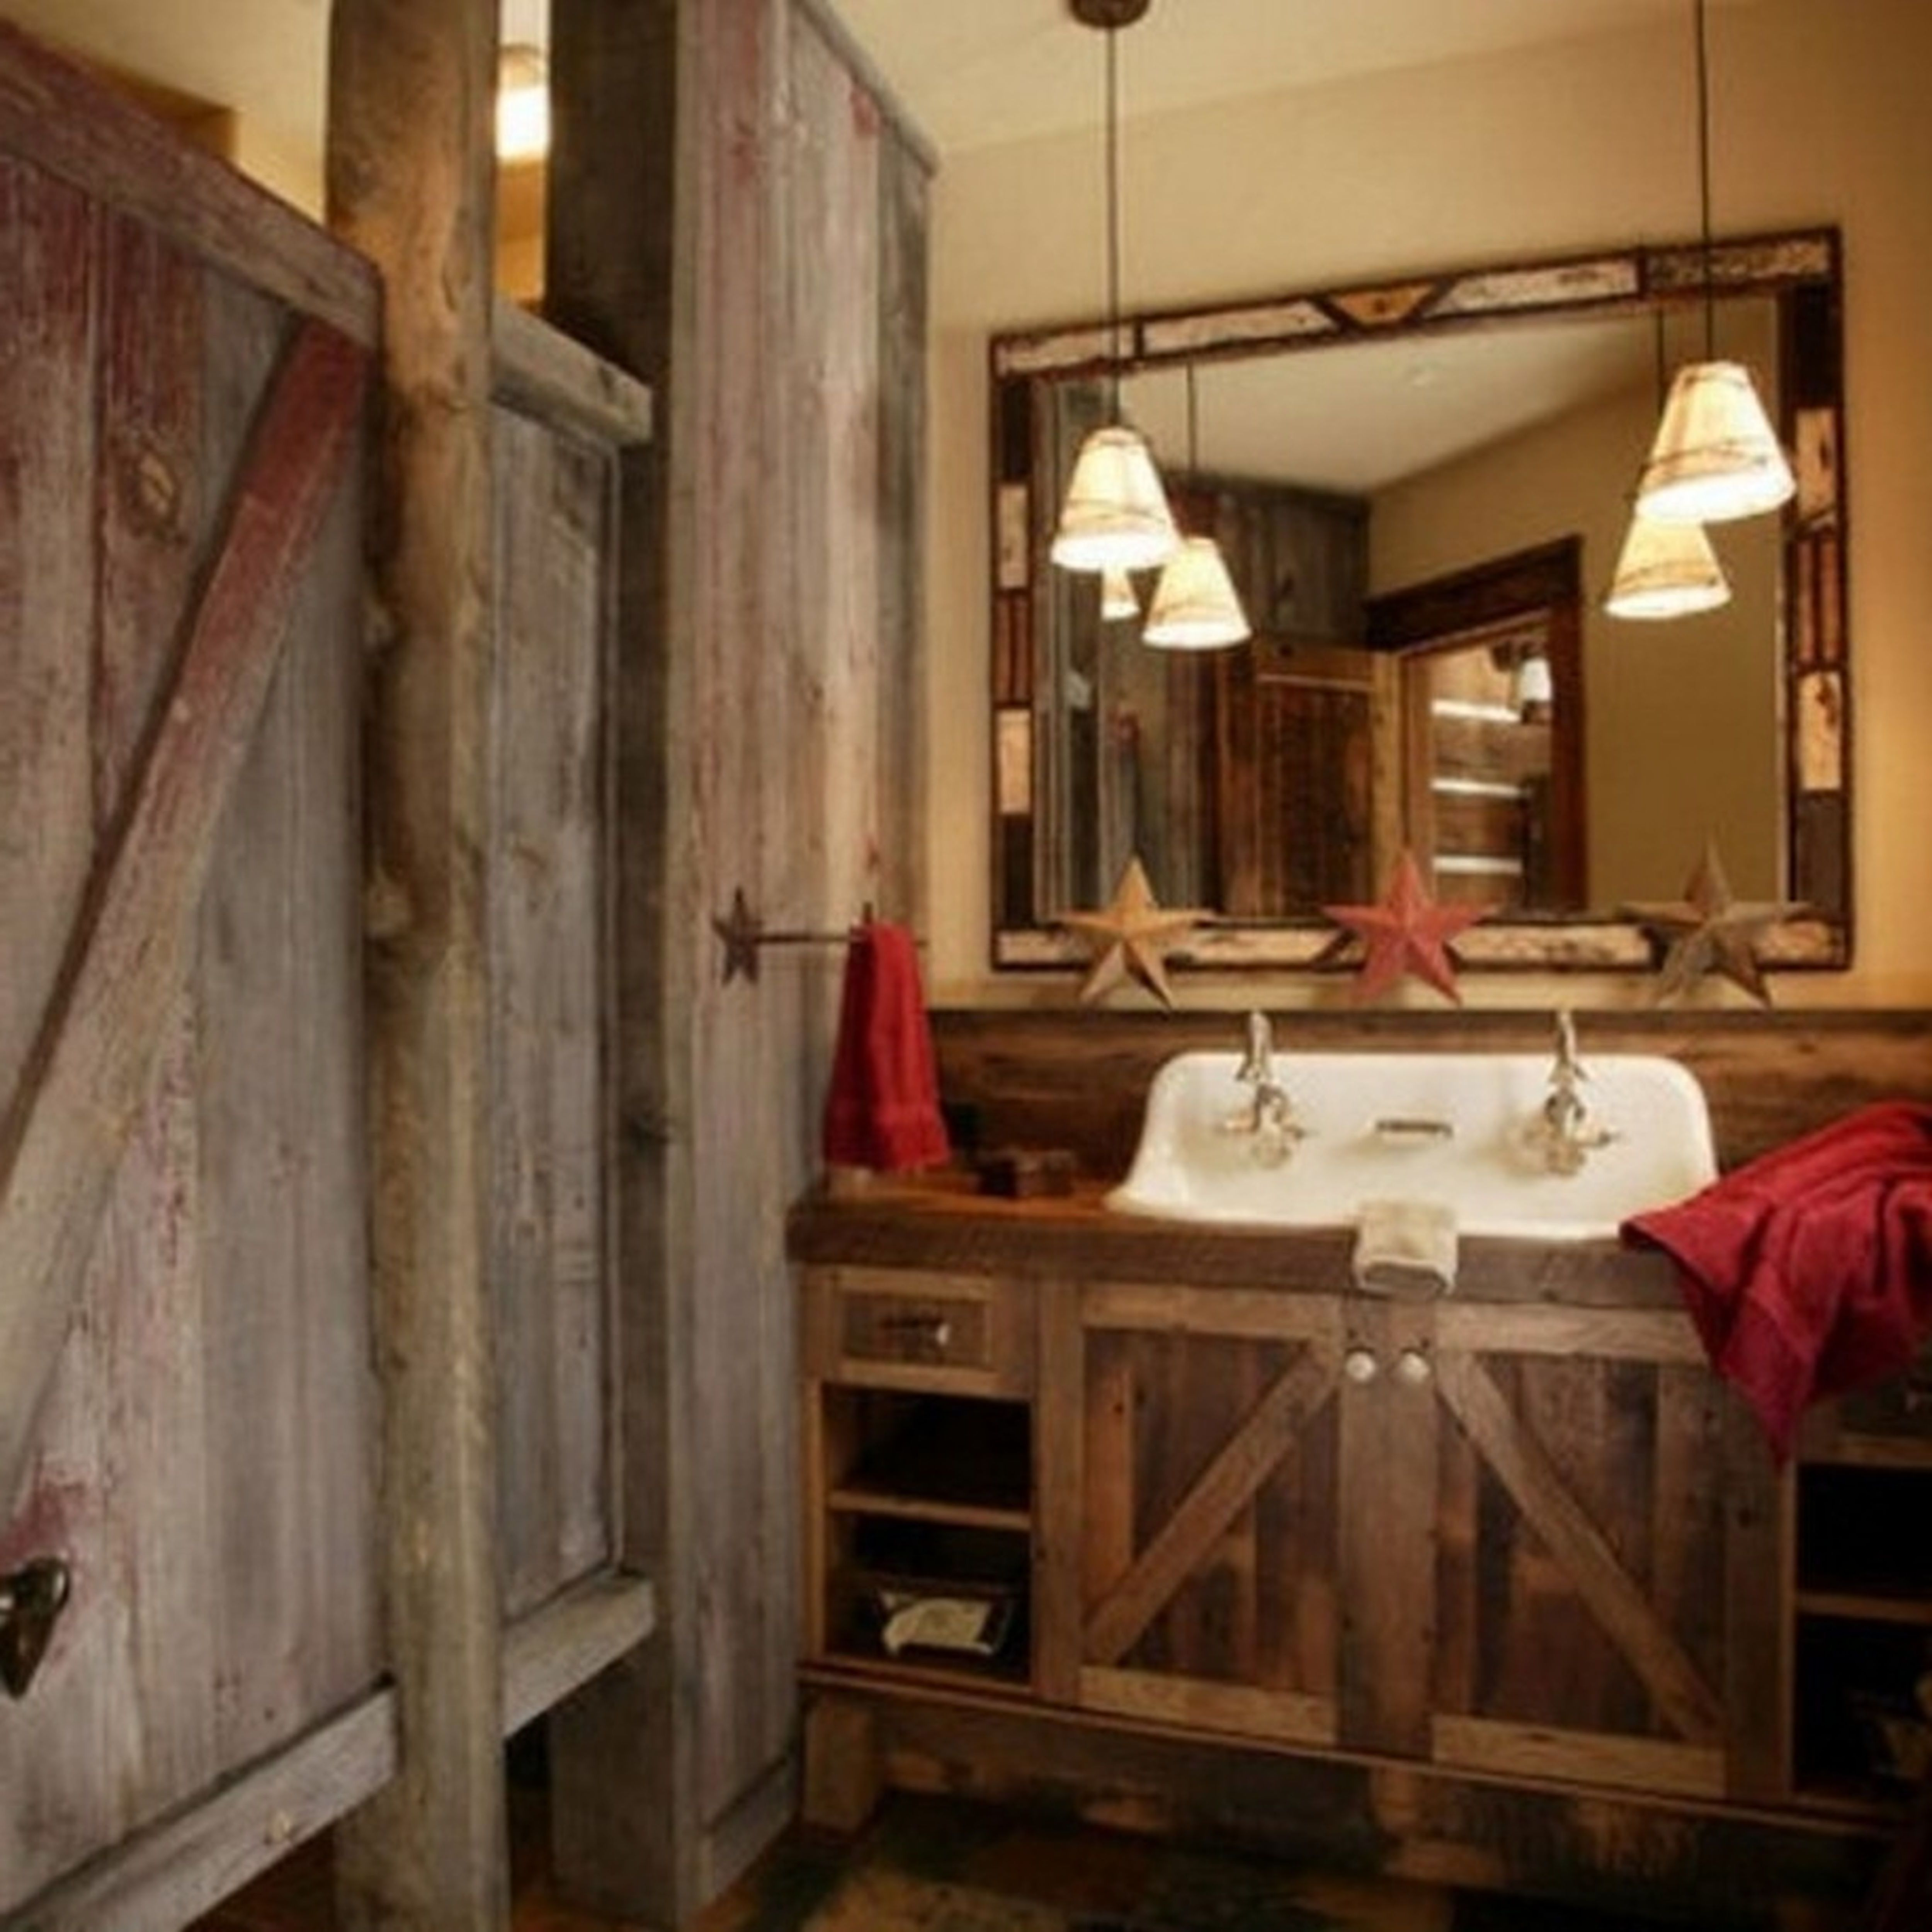 Rustic Bathroom Ideas Pinterest Extraordinary Bathroom Popular Rustic Bathroom Ideas Elegance Decor And Inspiration Design